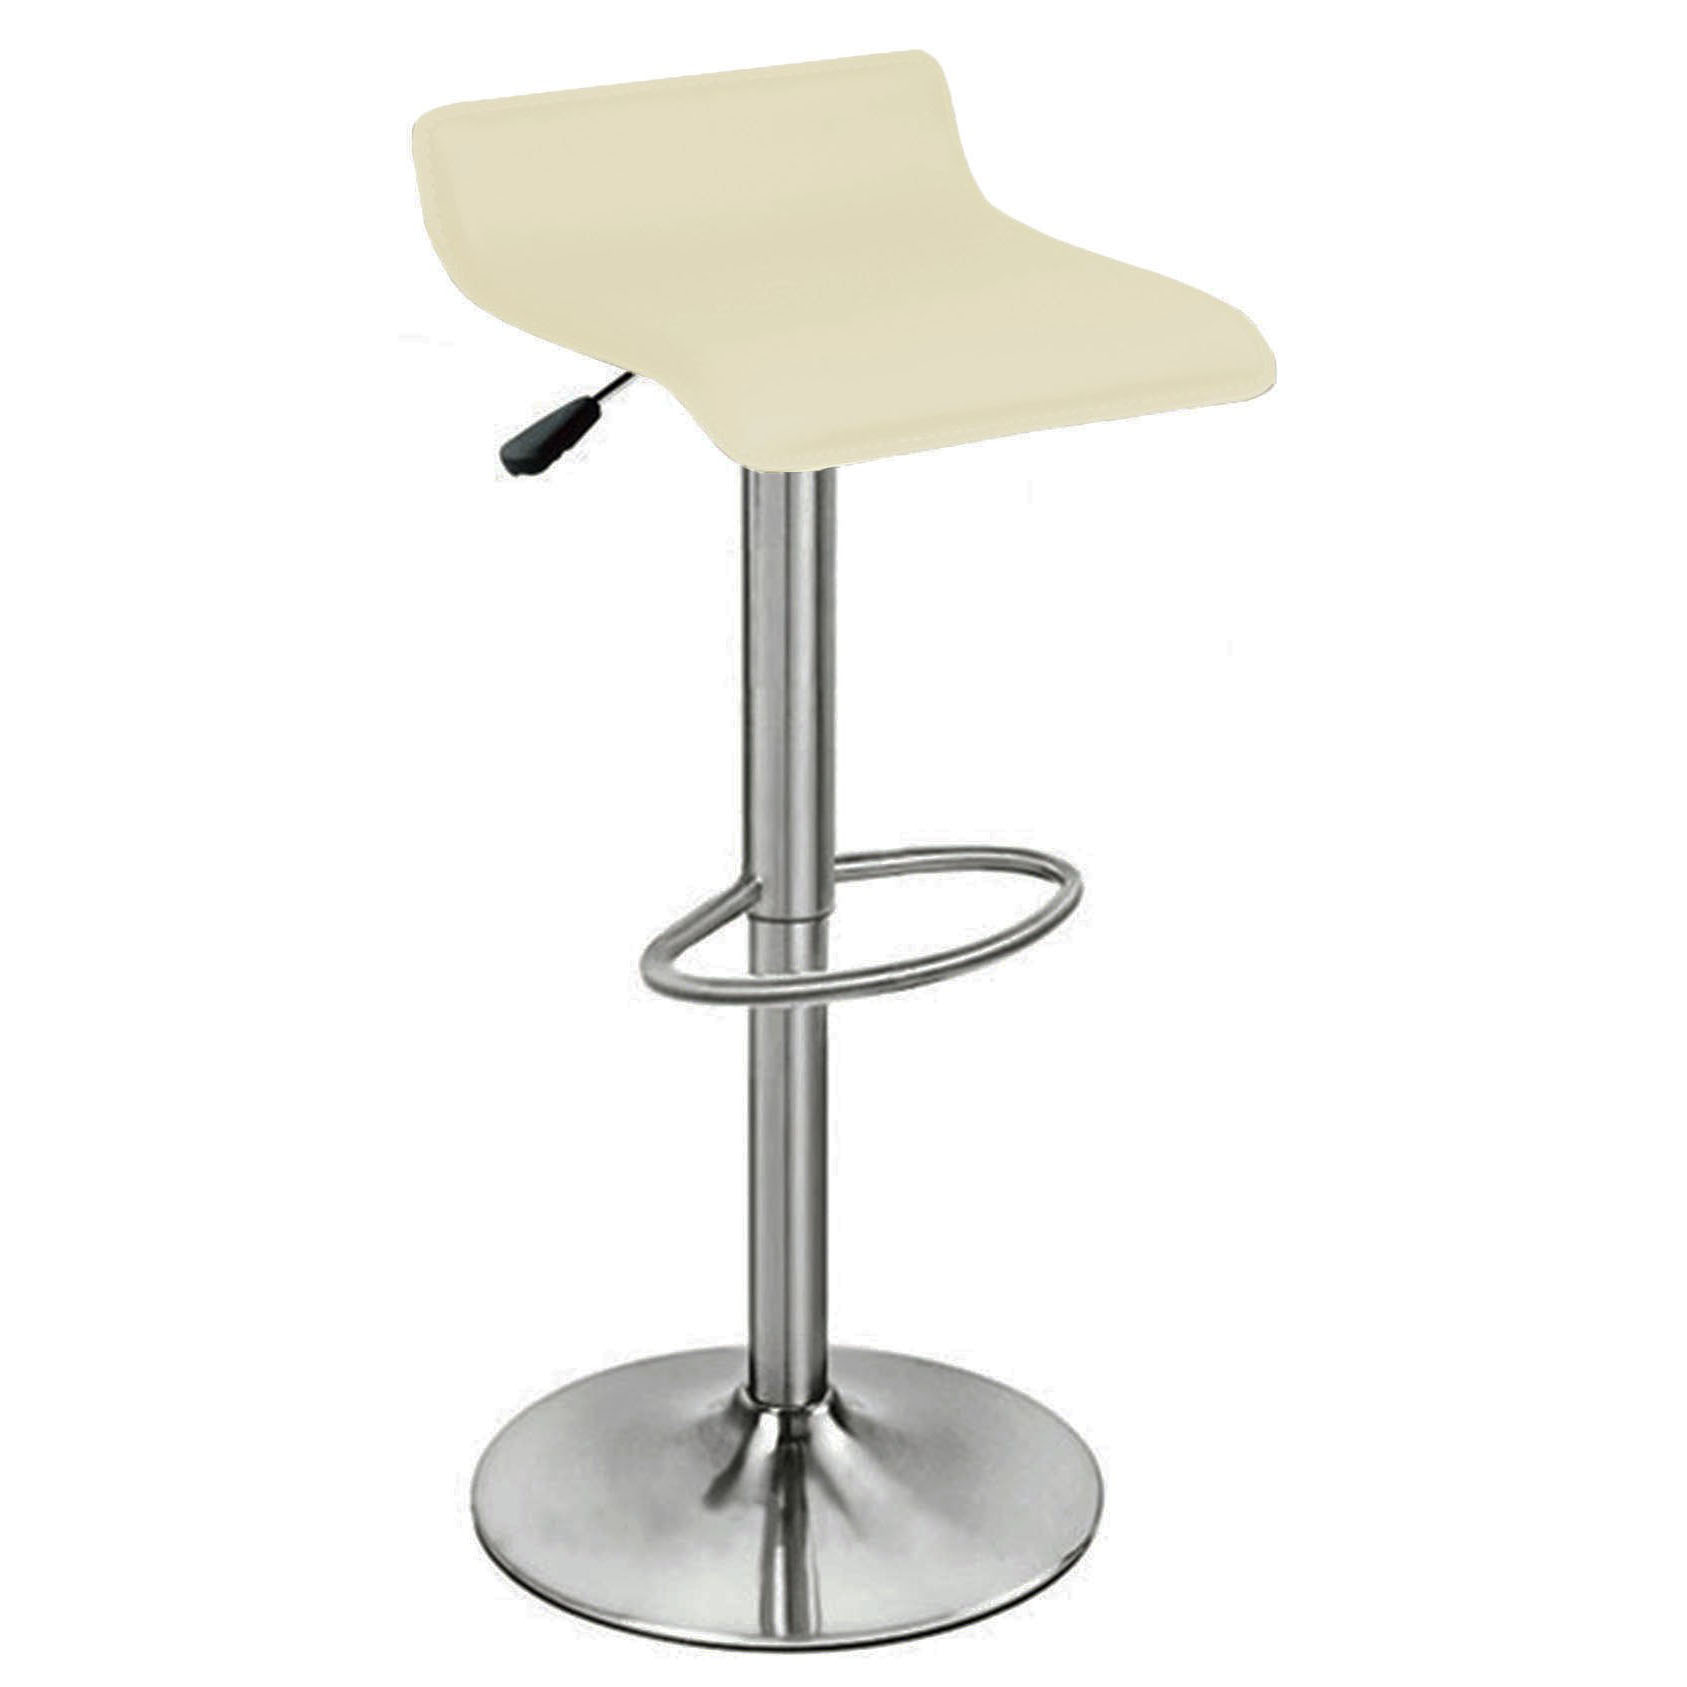 kitchen stool coffee rugs cream bar stools uk sale cheap trade prices baceno brushed